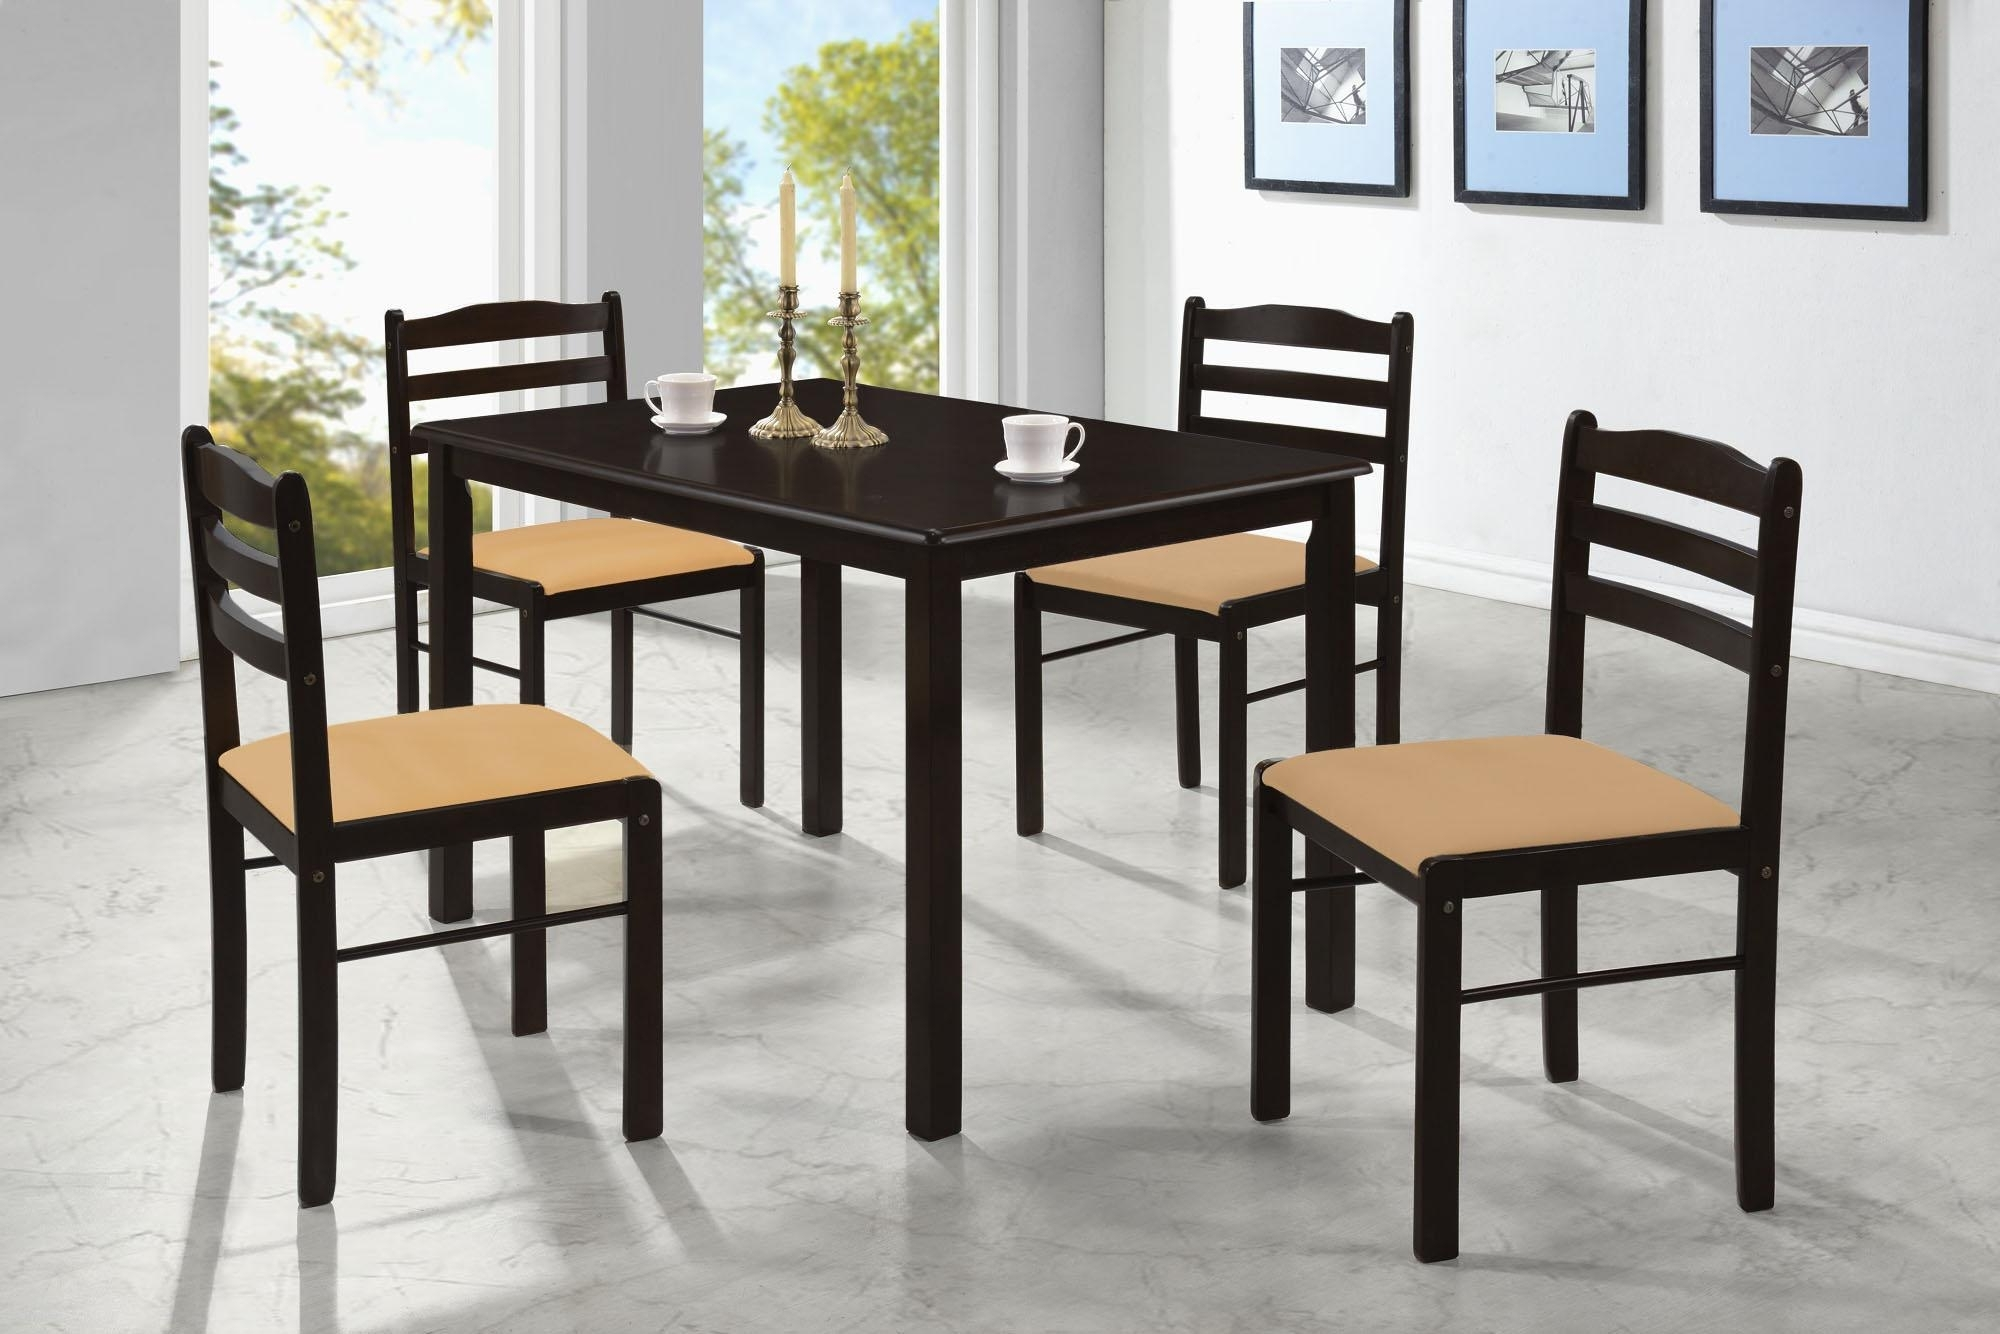 Dining Tables Pertaining To Newest Dining Table For Sale – Dining Tables Prices, Brands & Review In (View 11 of 25)